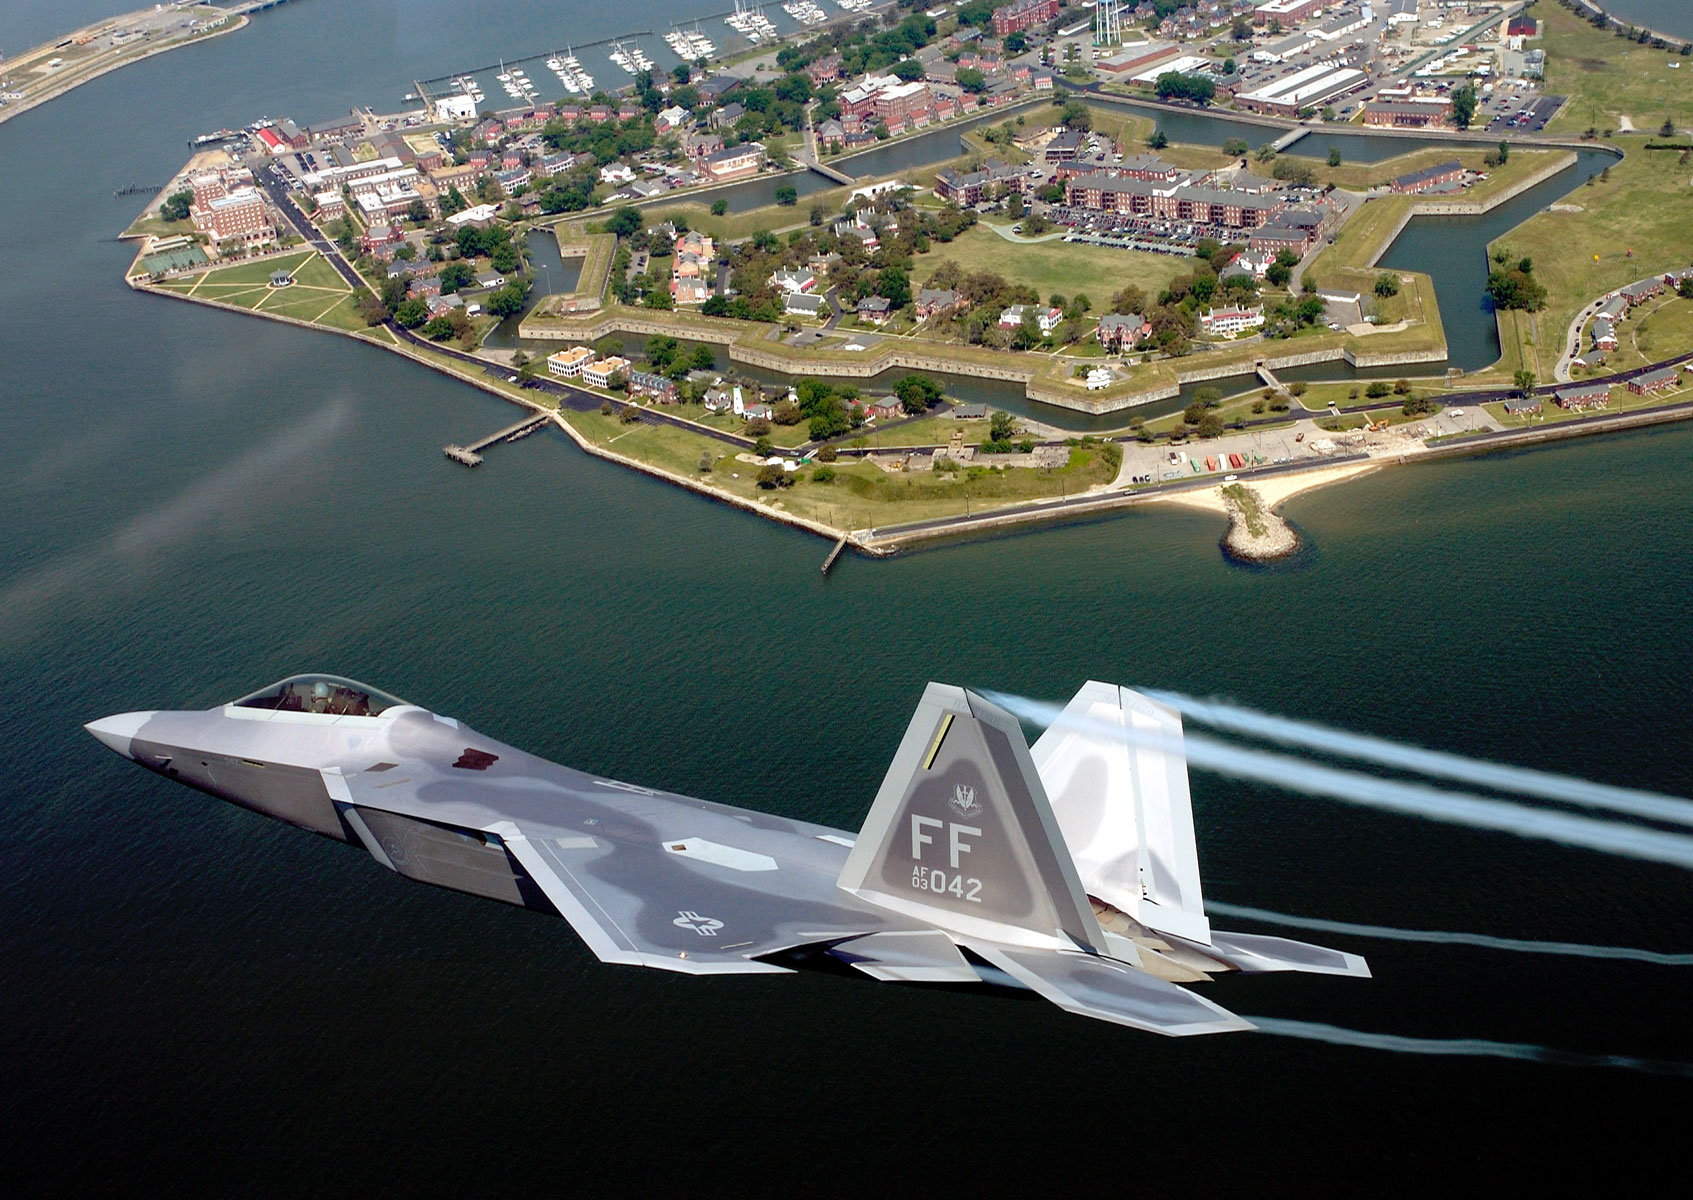 Lt. Col. James Hecker flies over Fort Monroe before delivering the first operational F-22A Raptor to its permanent home at Langley Air Force Base, Va.